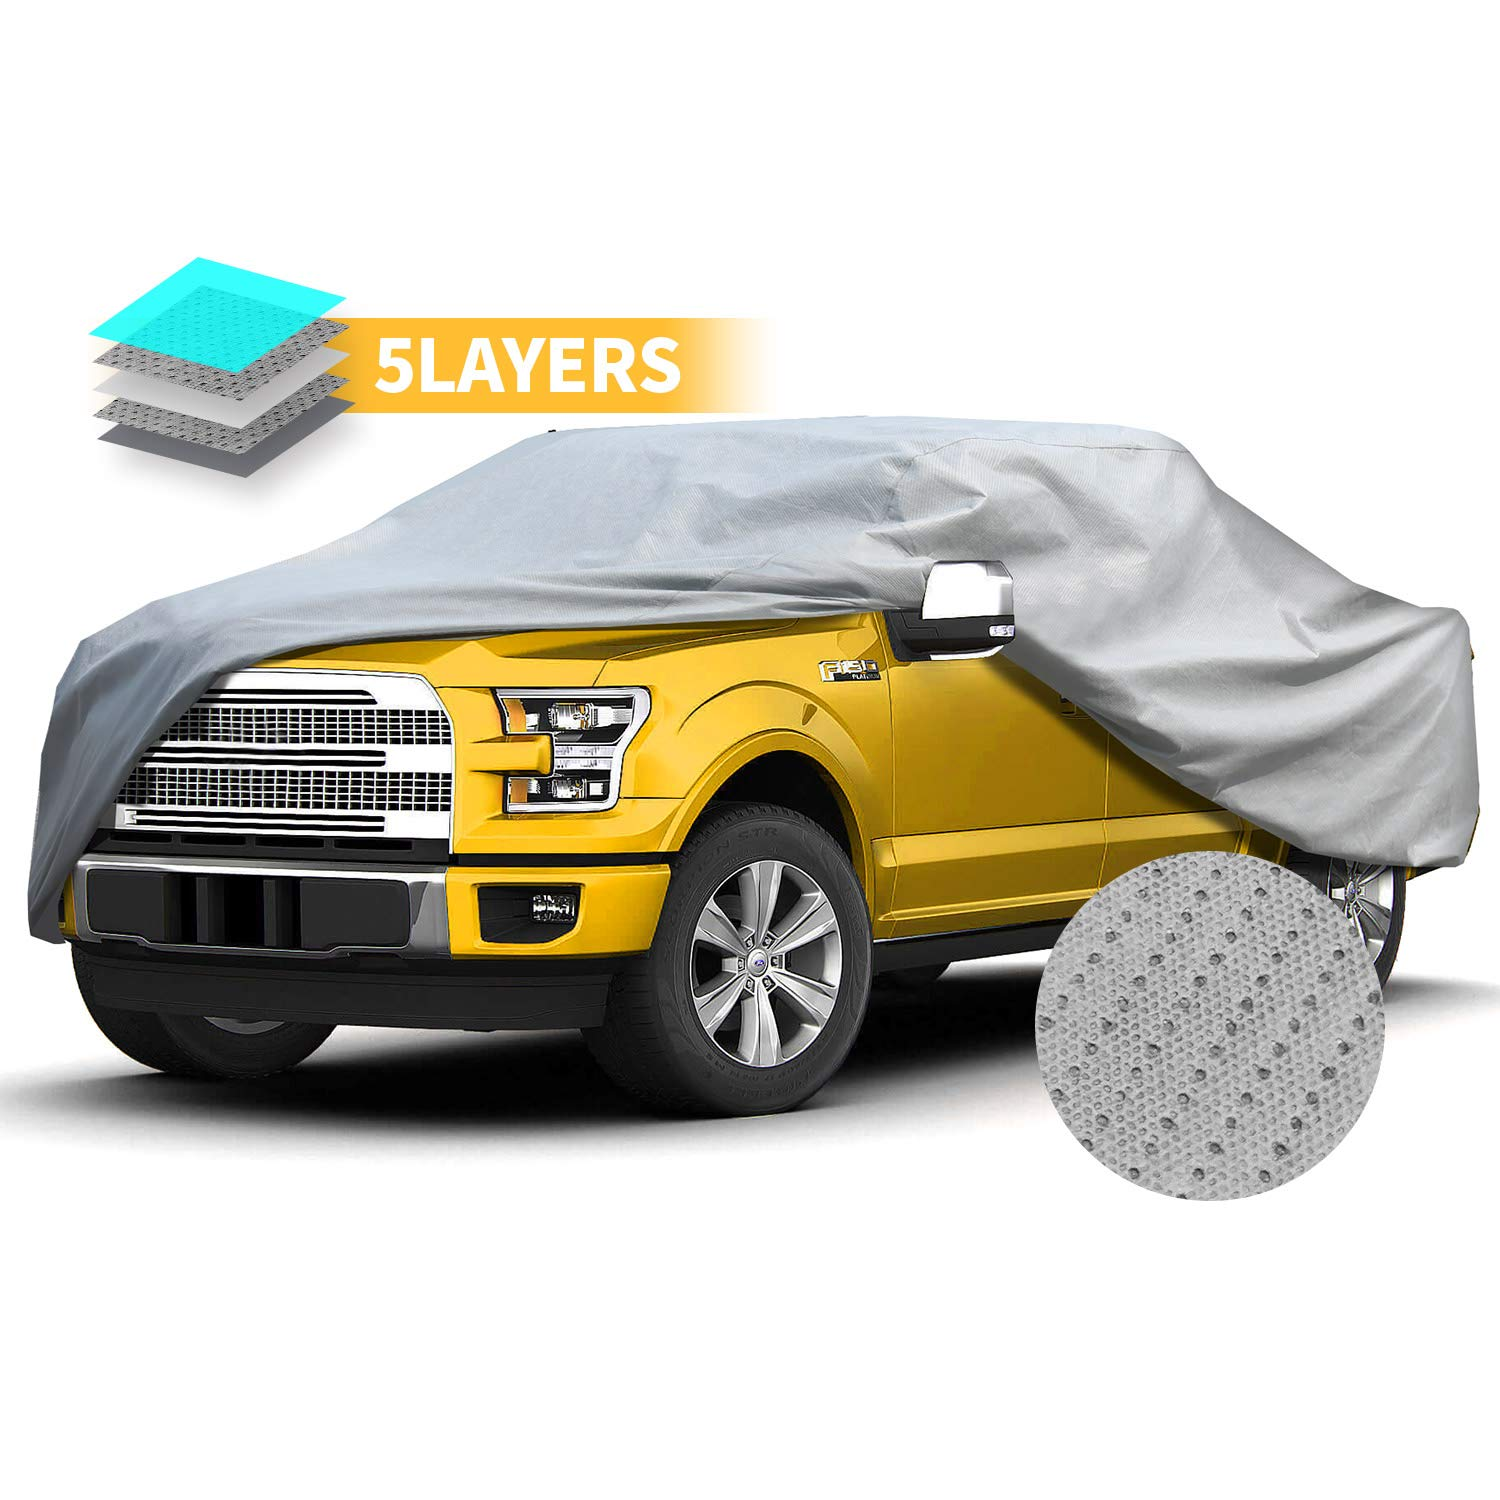 Truck Covers Full Exterior Car Cover UV Resistance Semi-Custom Car Cover Windproof Outdoor Auto Covers for 210 Truck